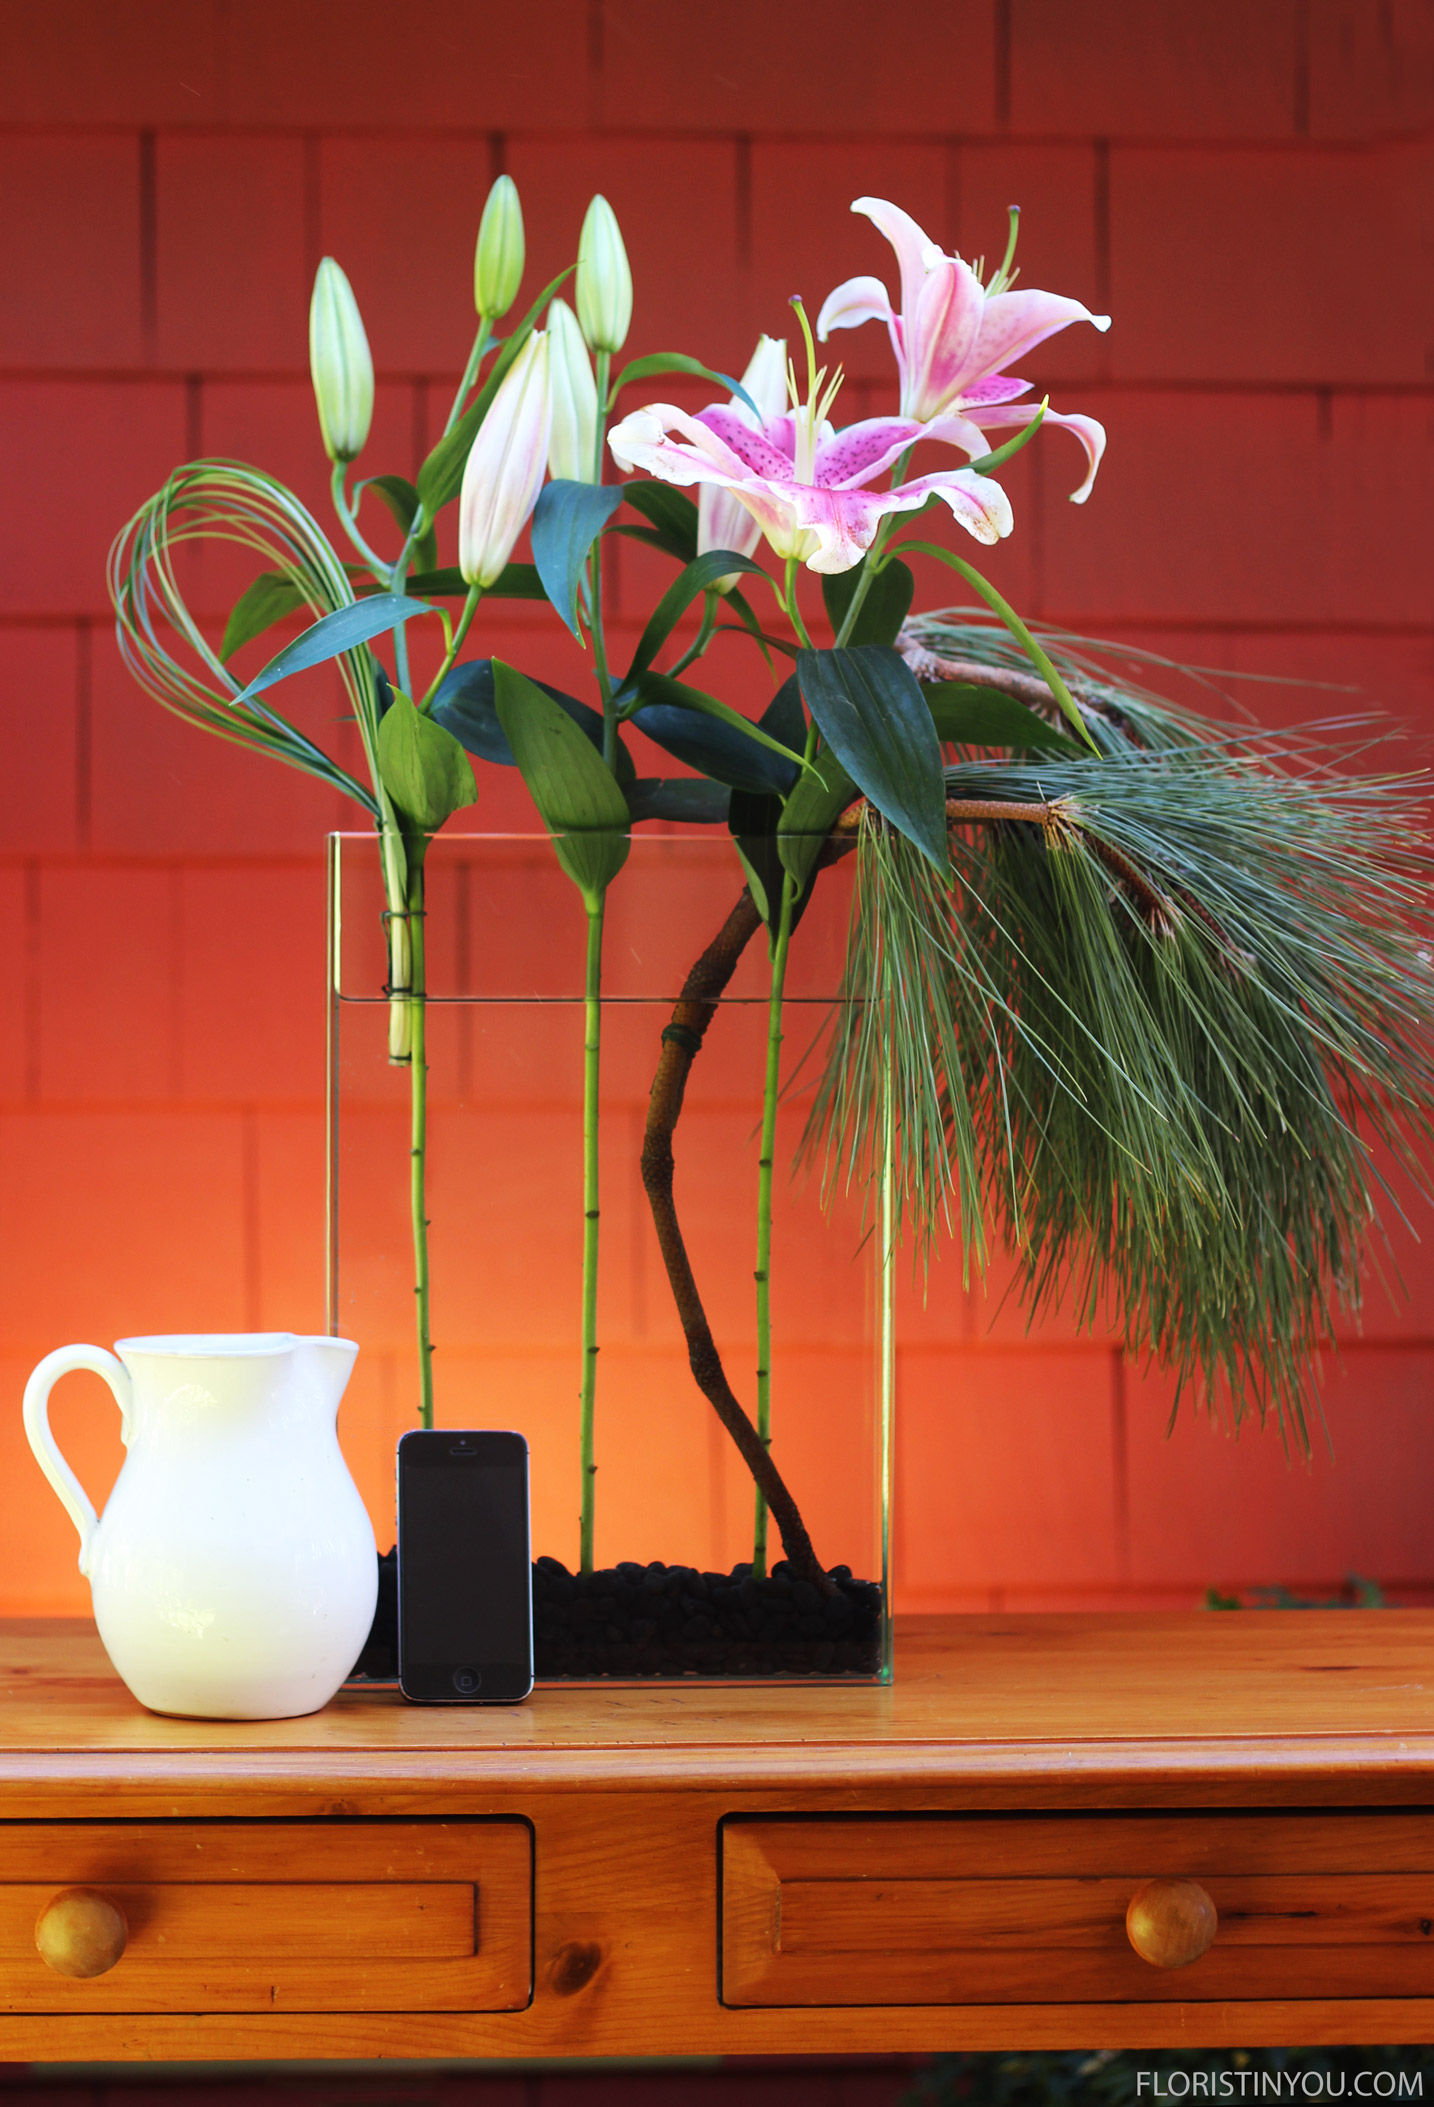 See the scale of the arrangement next to a cell phone and a pitcher.